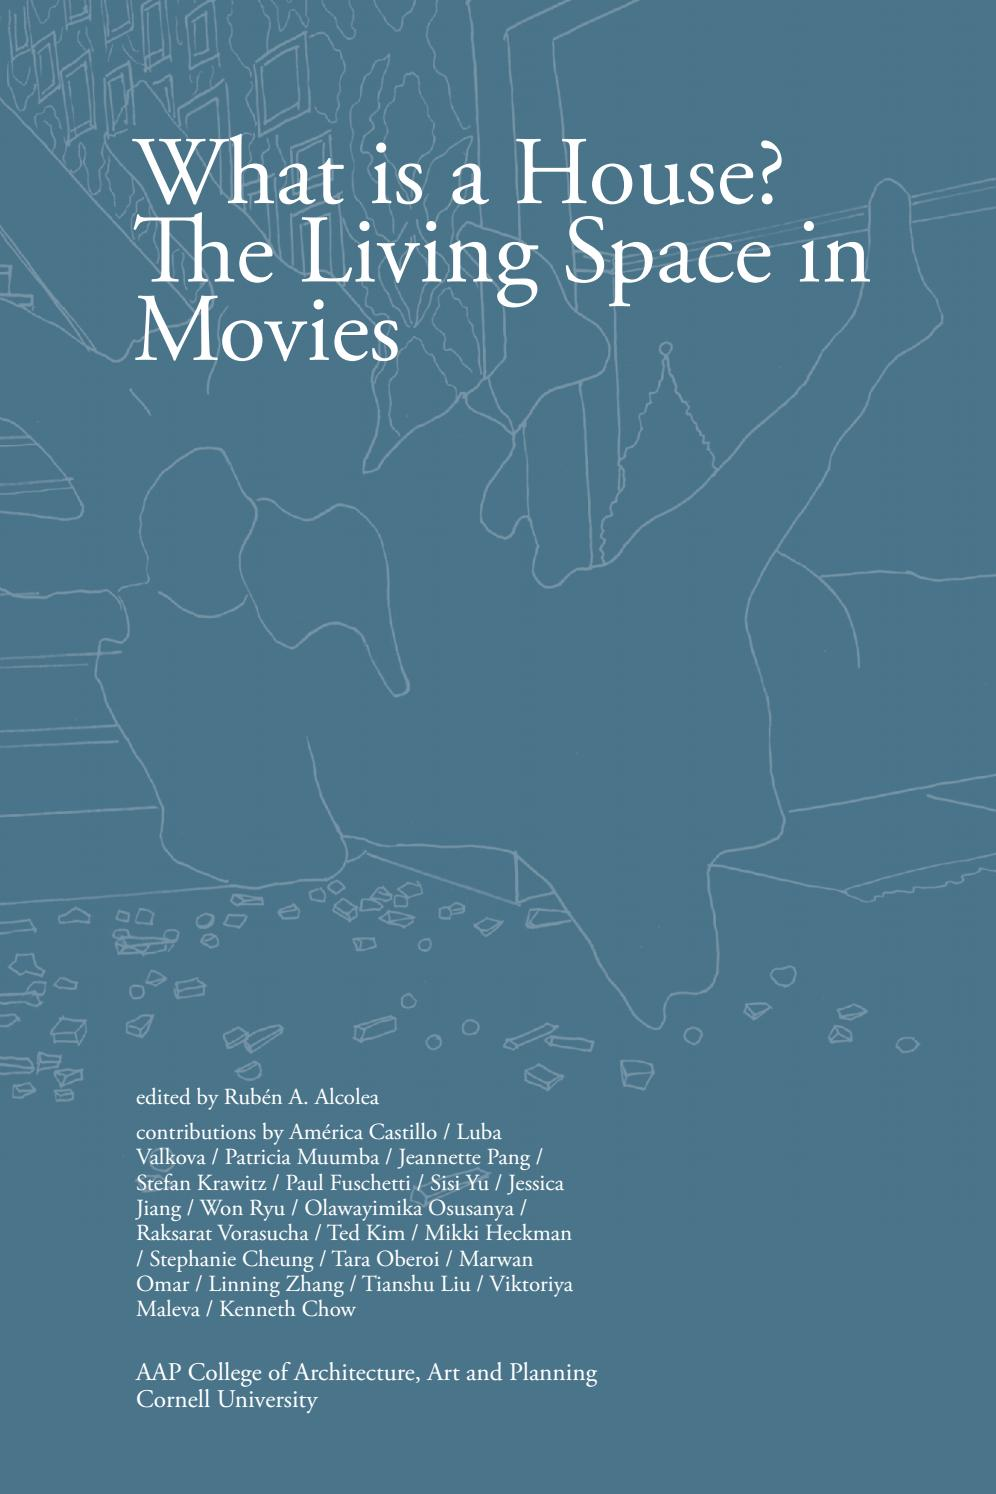 What is a House? The Living Space in Movies by Ruben Alcolea - issuu